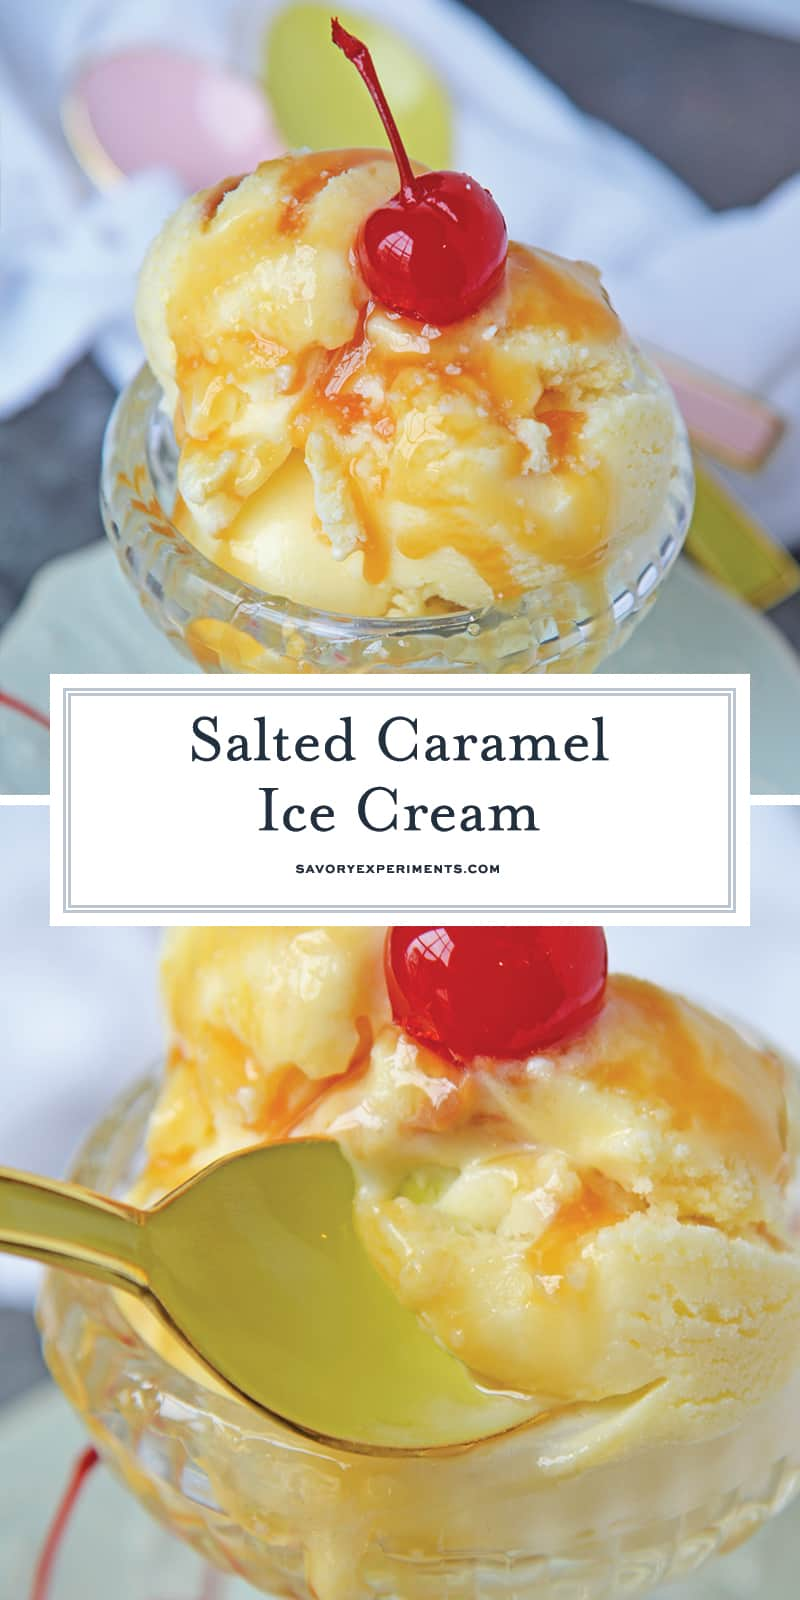 Salted Caramel Ice Cream is what salty sweet goodness dreams are made of! In just 35 minutes you can make your own homemade ice cream at home! #saltedcaramelicecream #homemadeicecream www.savoryexperiments.com